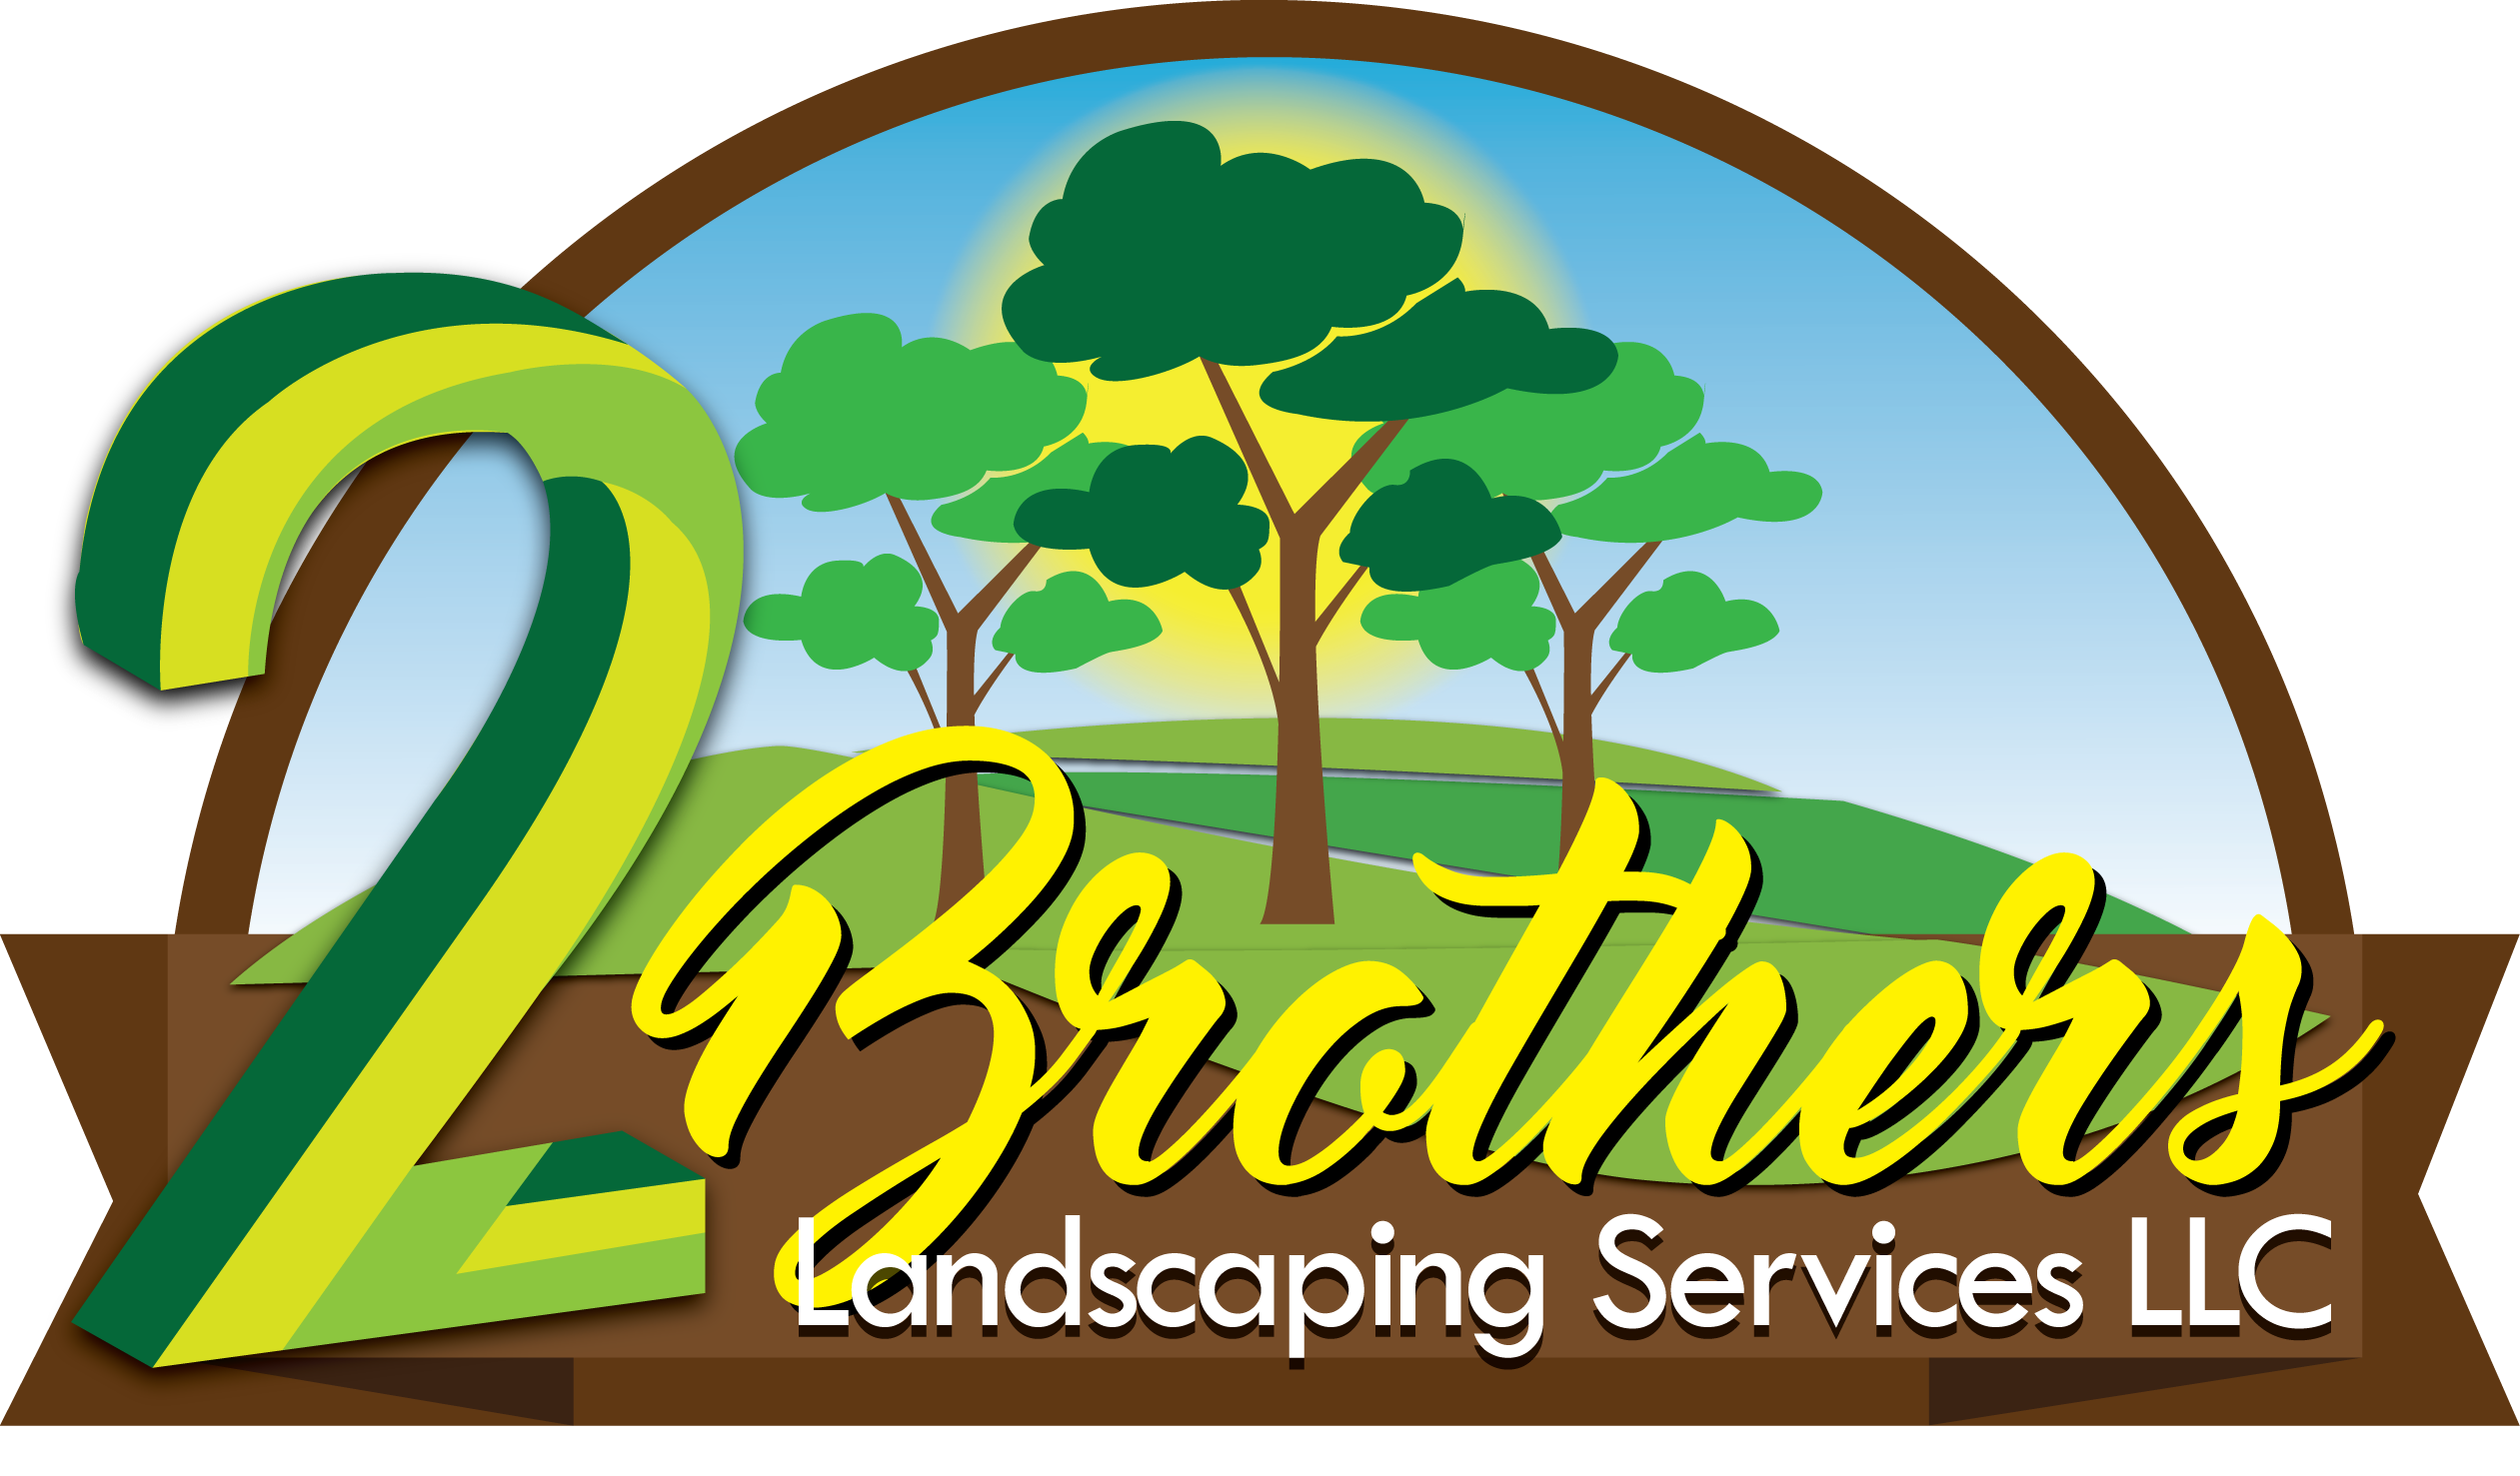 2 Brothers Landscaping Service LLC logo